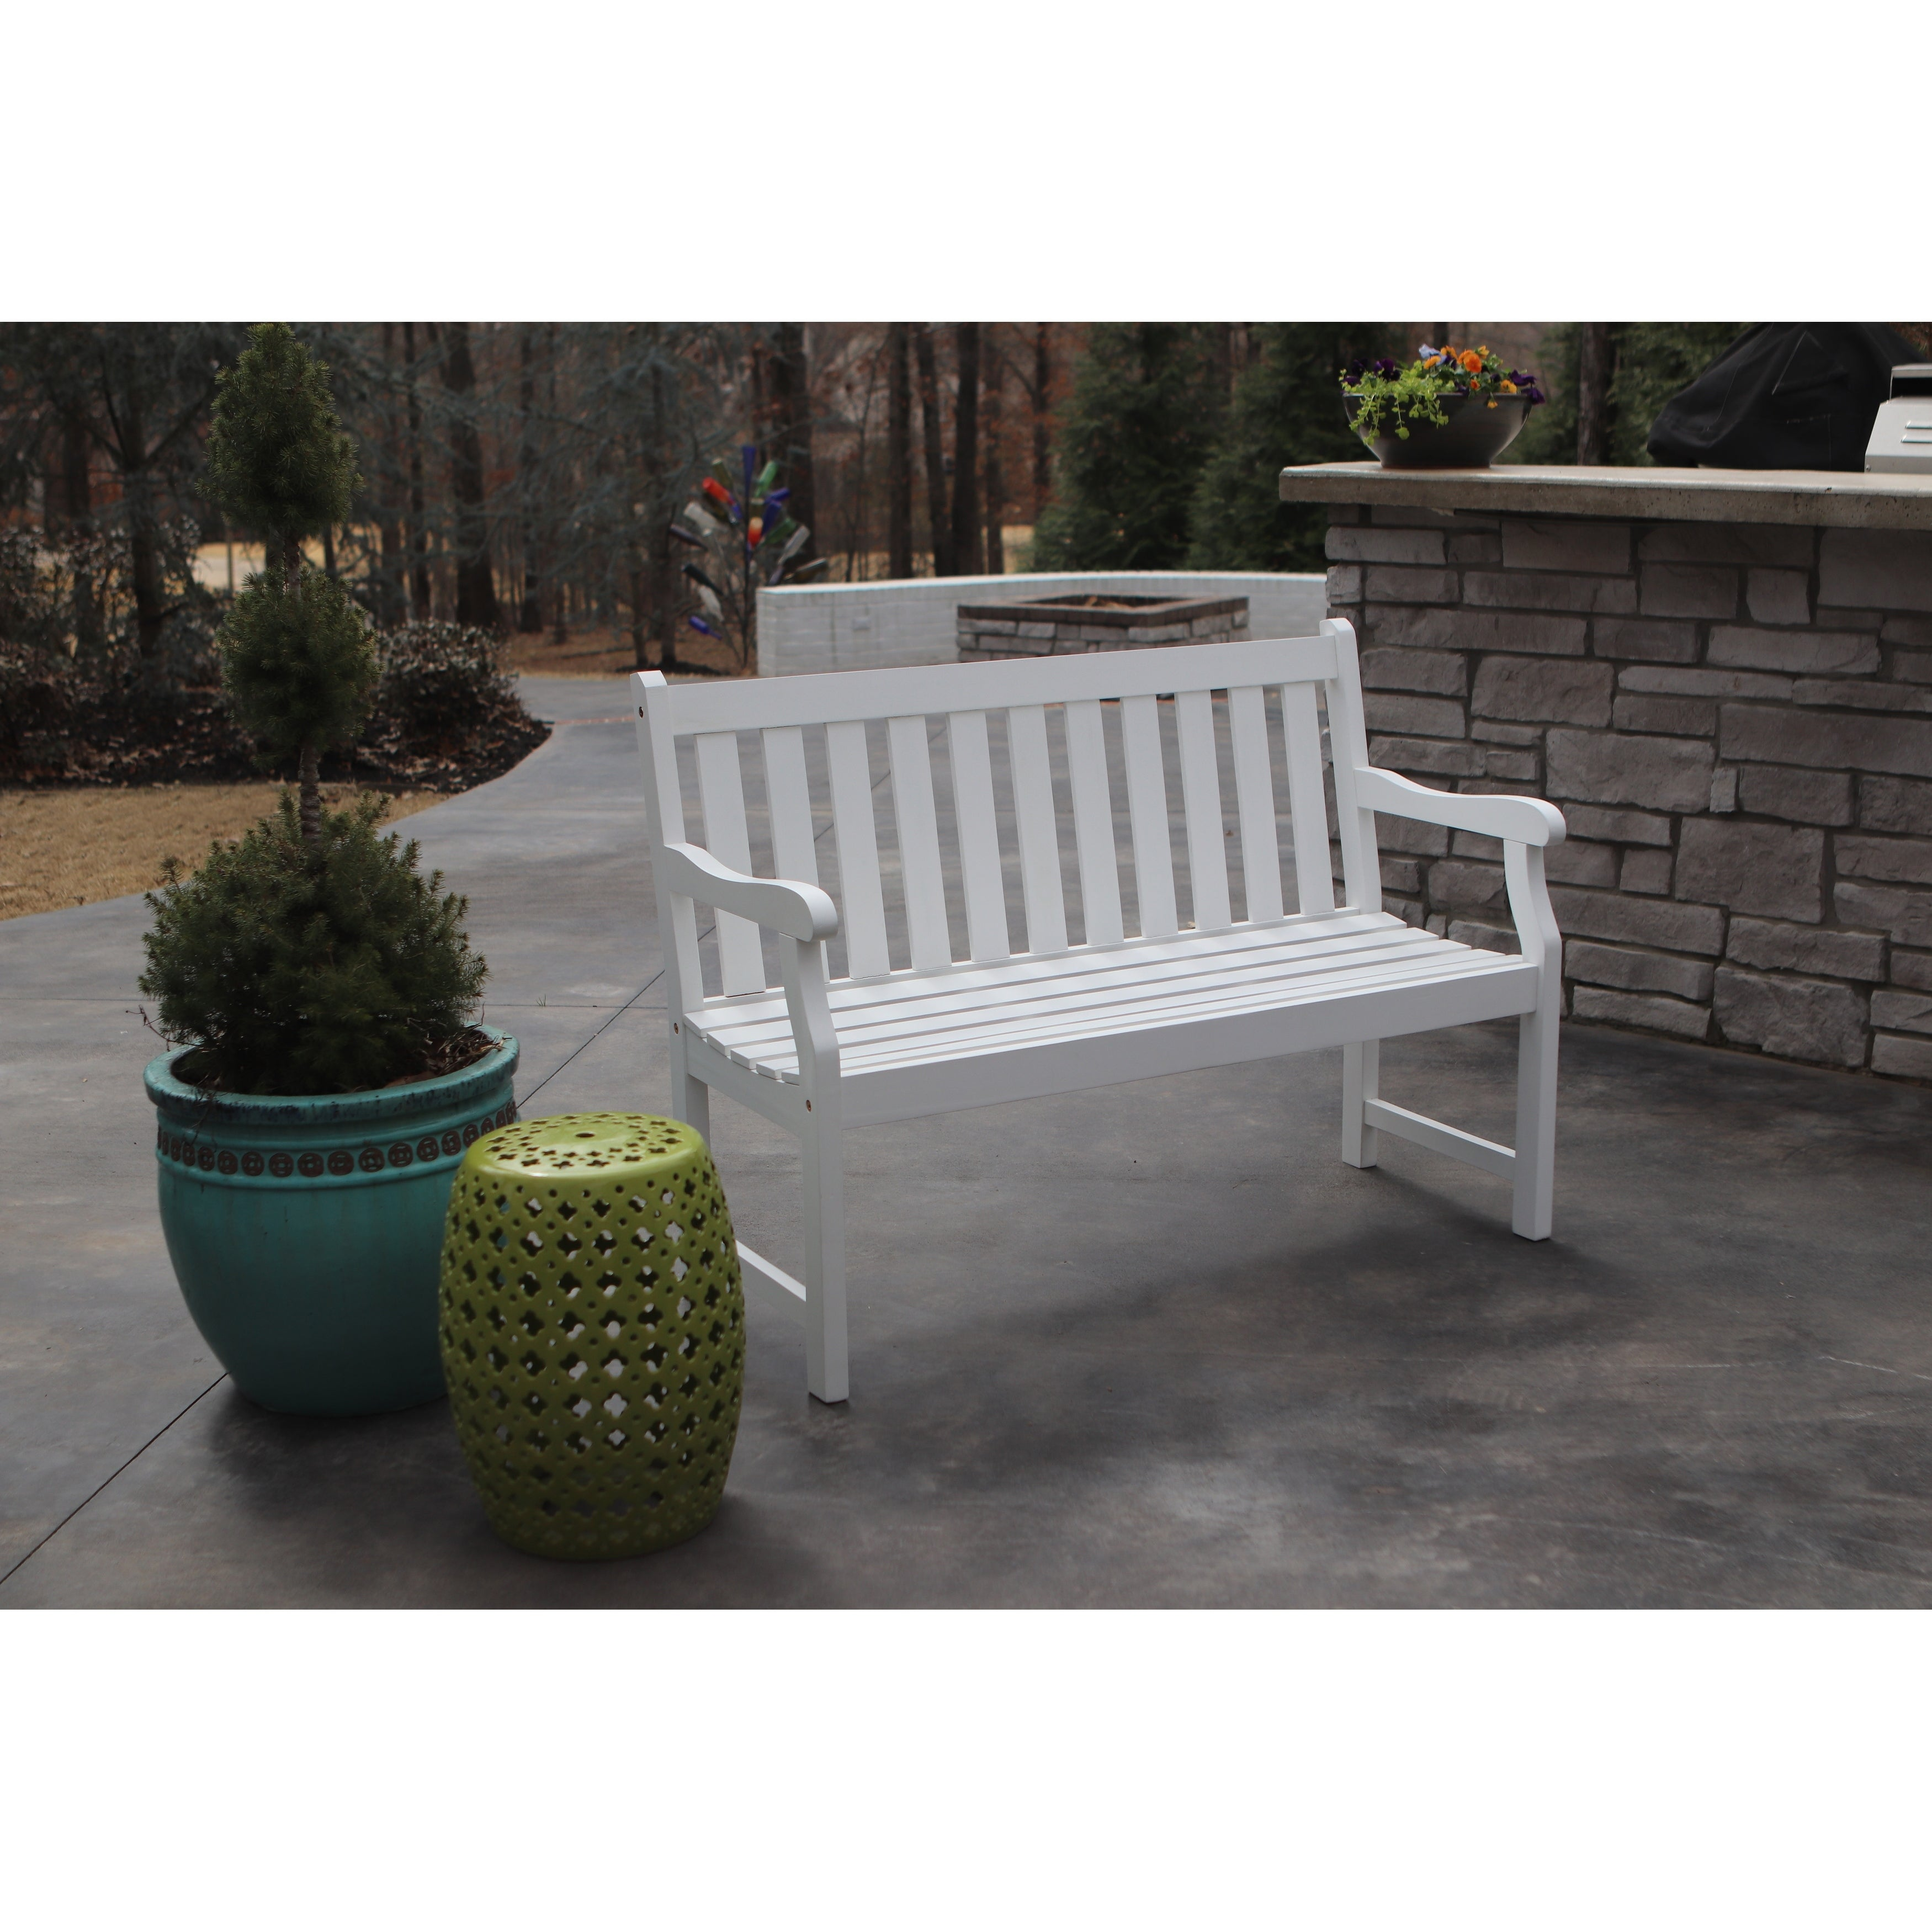 Tremendous Buy Outdoor Benches Online At Overstock Our Best Patio Gmtry Best Dining Table And Chair Ideas Images Gmtryco